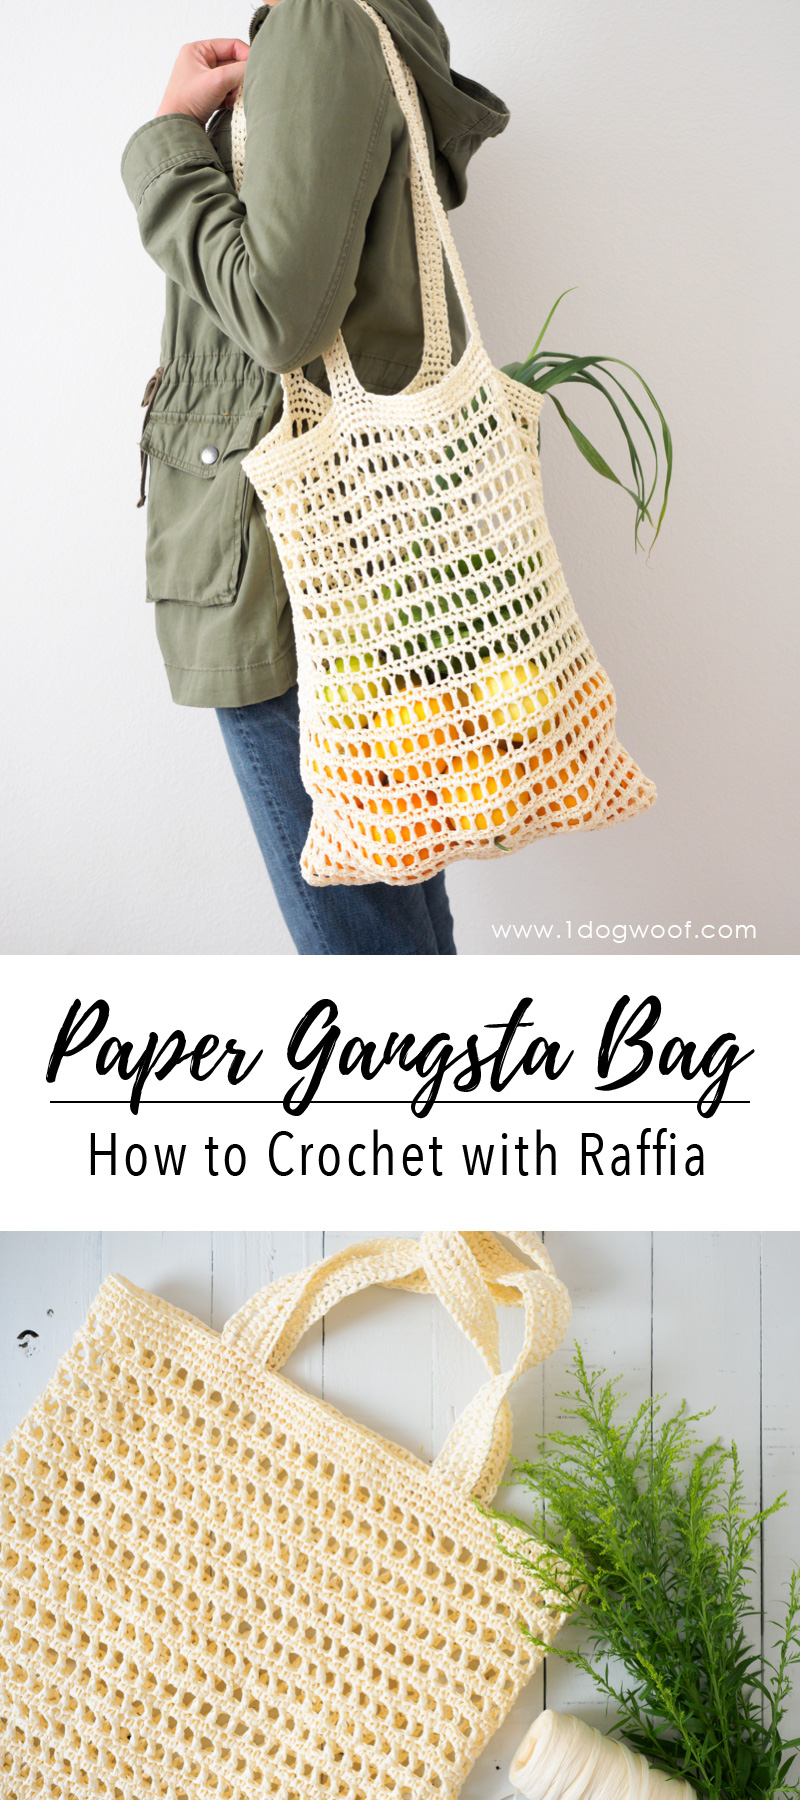 Paper Gansta Bag - How to Crochet with Raffia